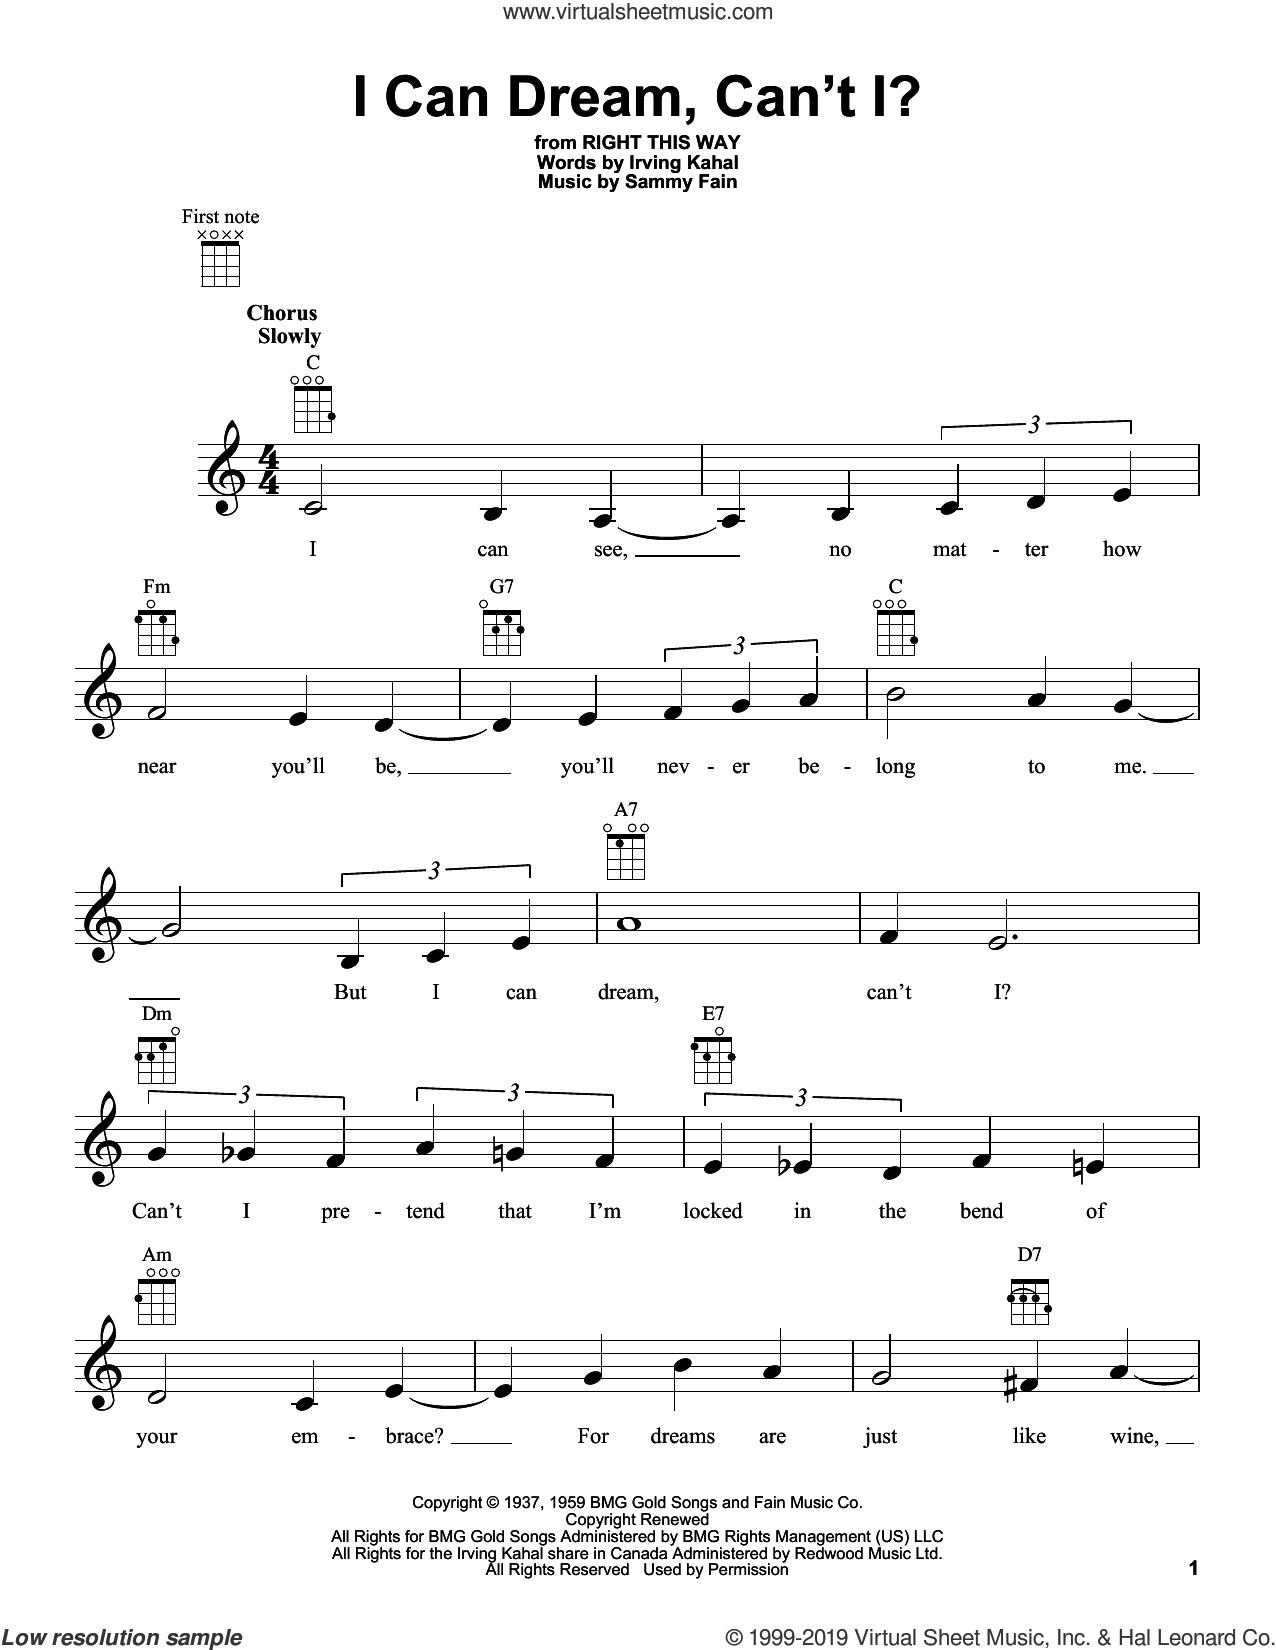 I Can Dream, Can't I? sheet music for ukulele by Irving Kahal and Sammy Fain, intermediate skill level